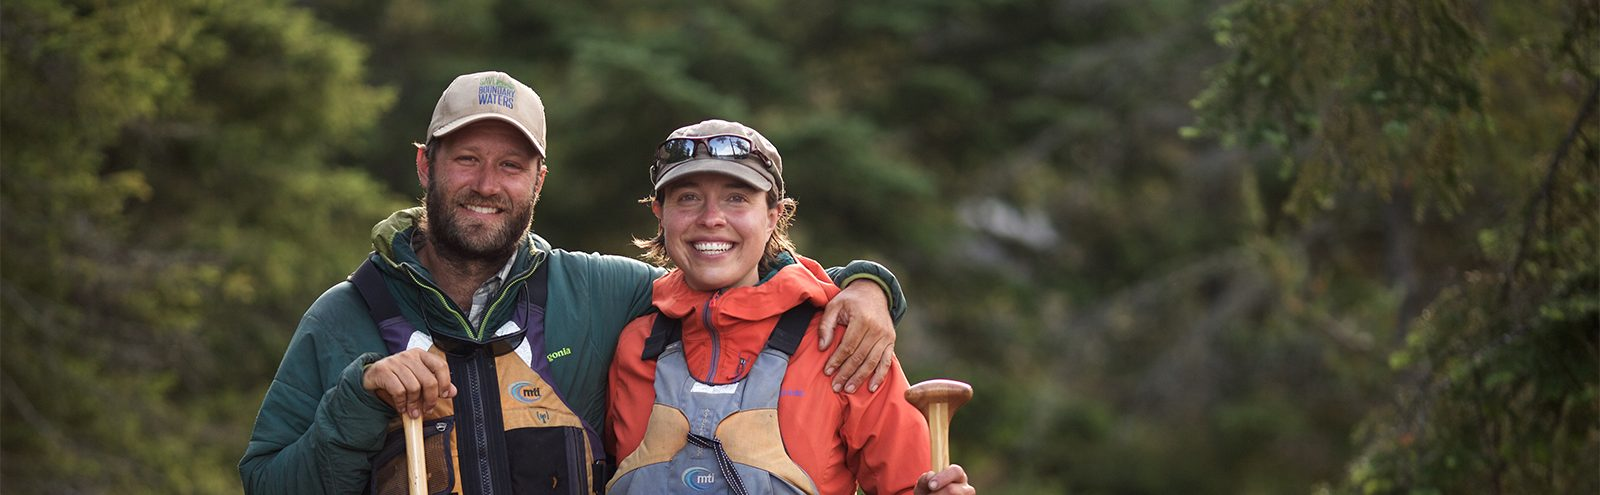 Amy and Dave Freeman during the Year in the Wilderness Expedition